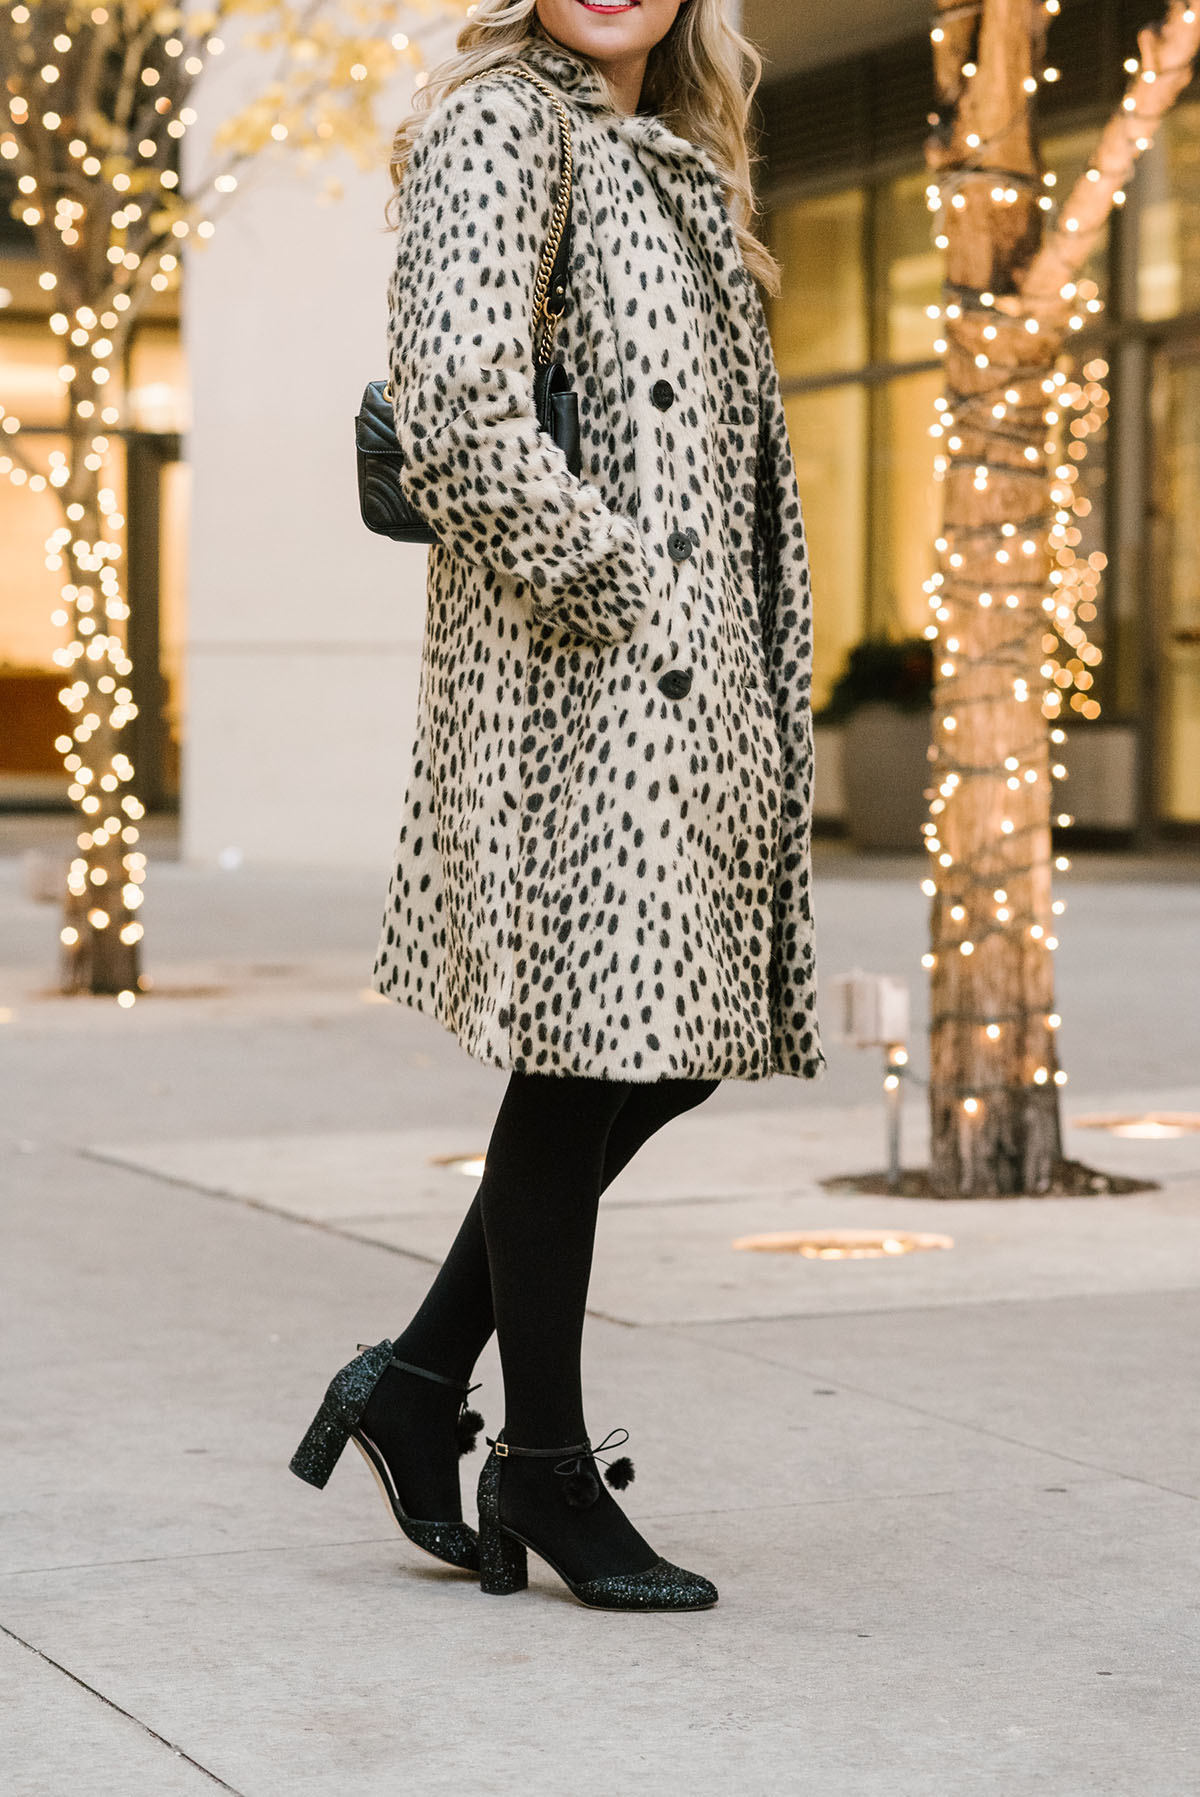 Bows & Sequins wearing an outfit for a holiday party in Chicago: Black Tweed Dress, Black Tights, Black Glitter Pumps, and a Leopard-Print Coat.